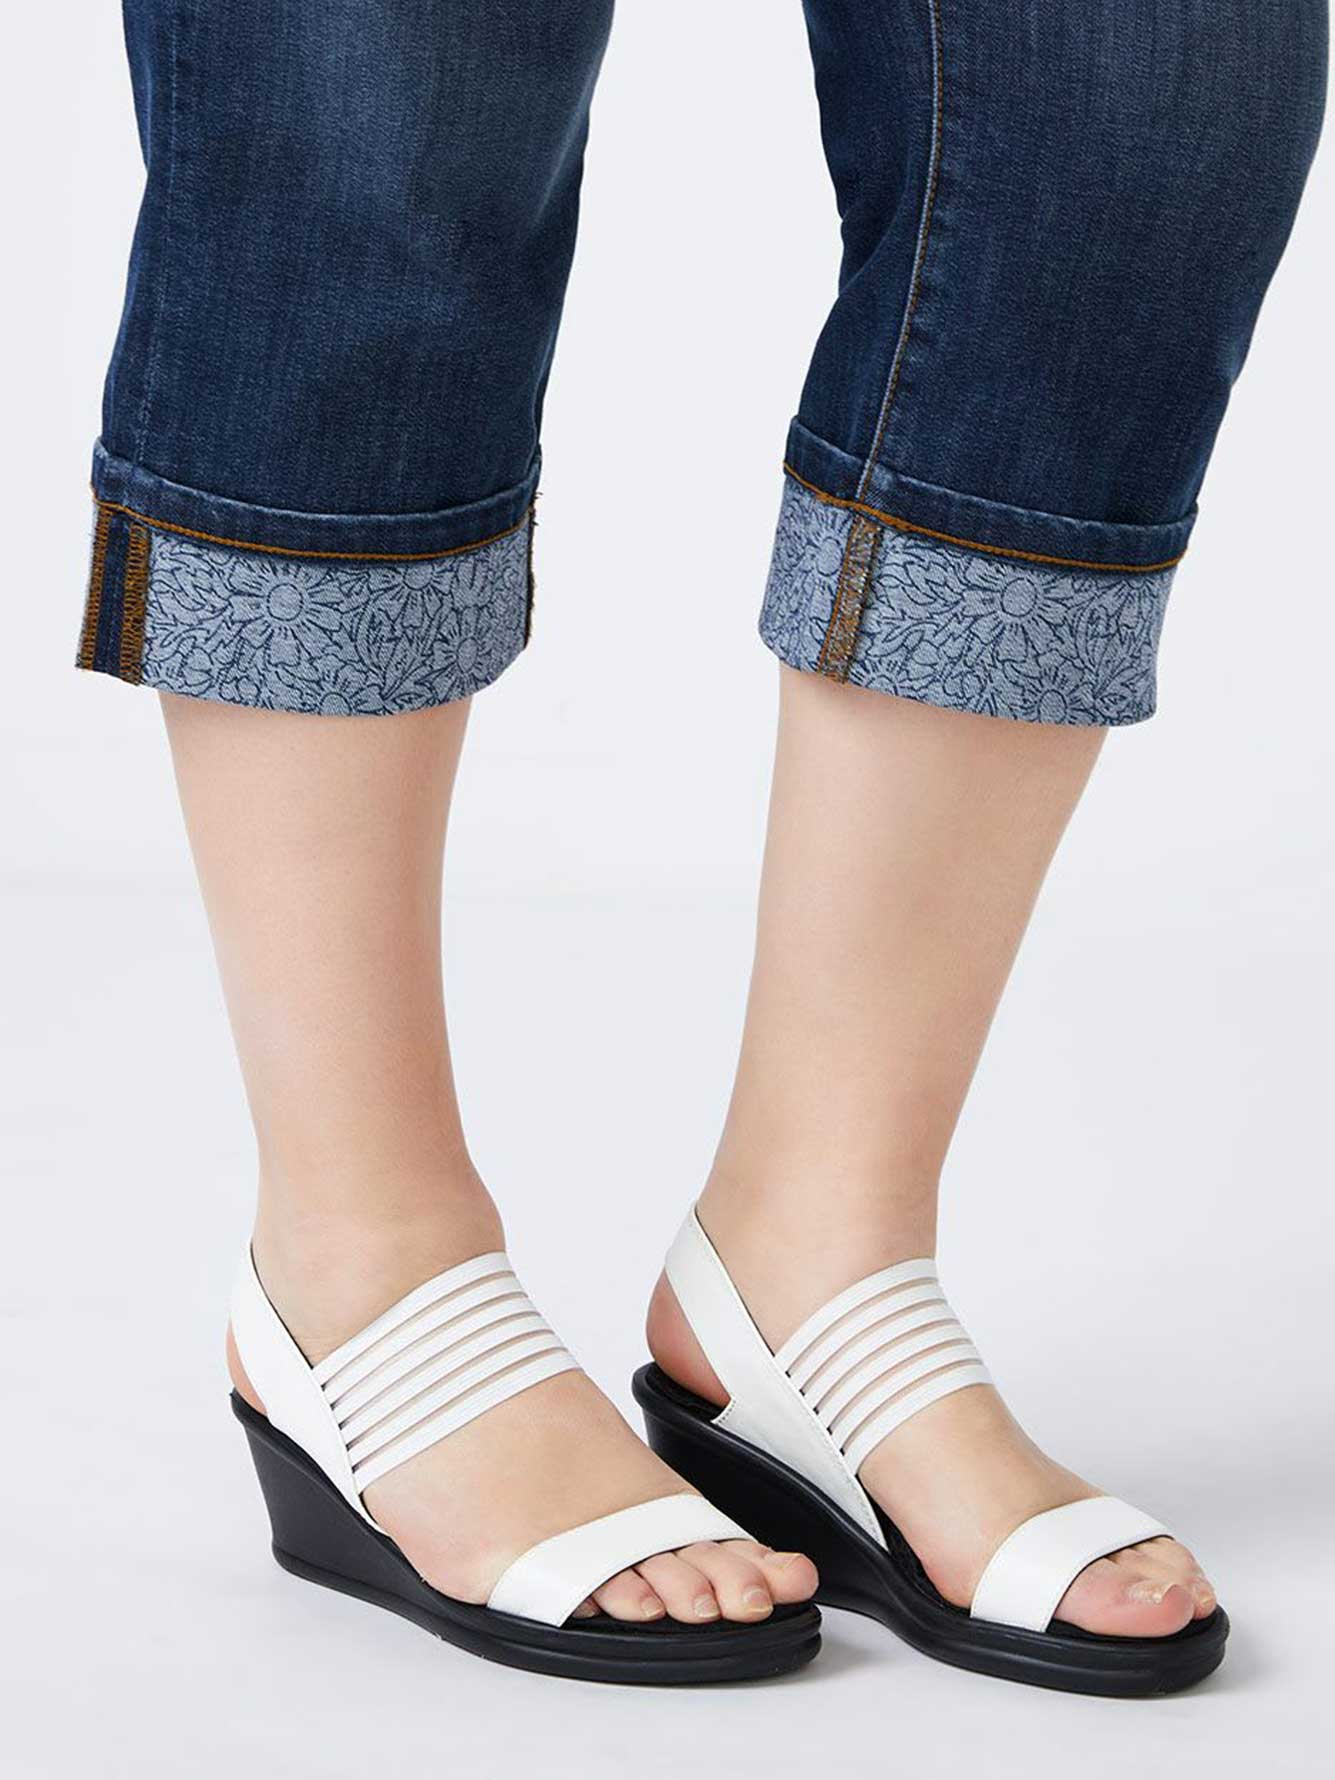 Wide-Width Wedge Sandals - Skechers